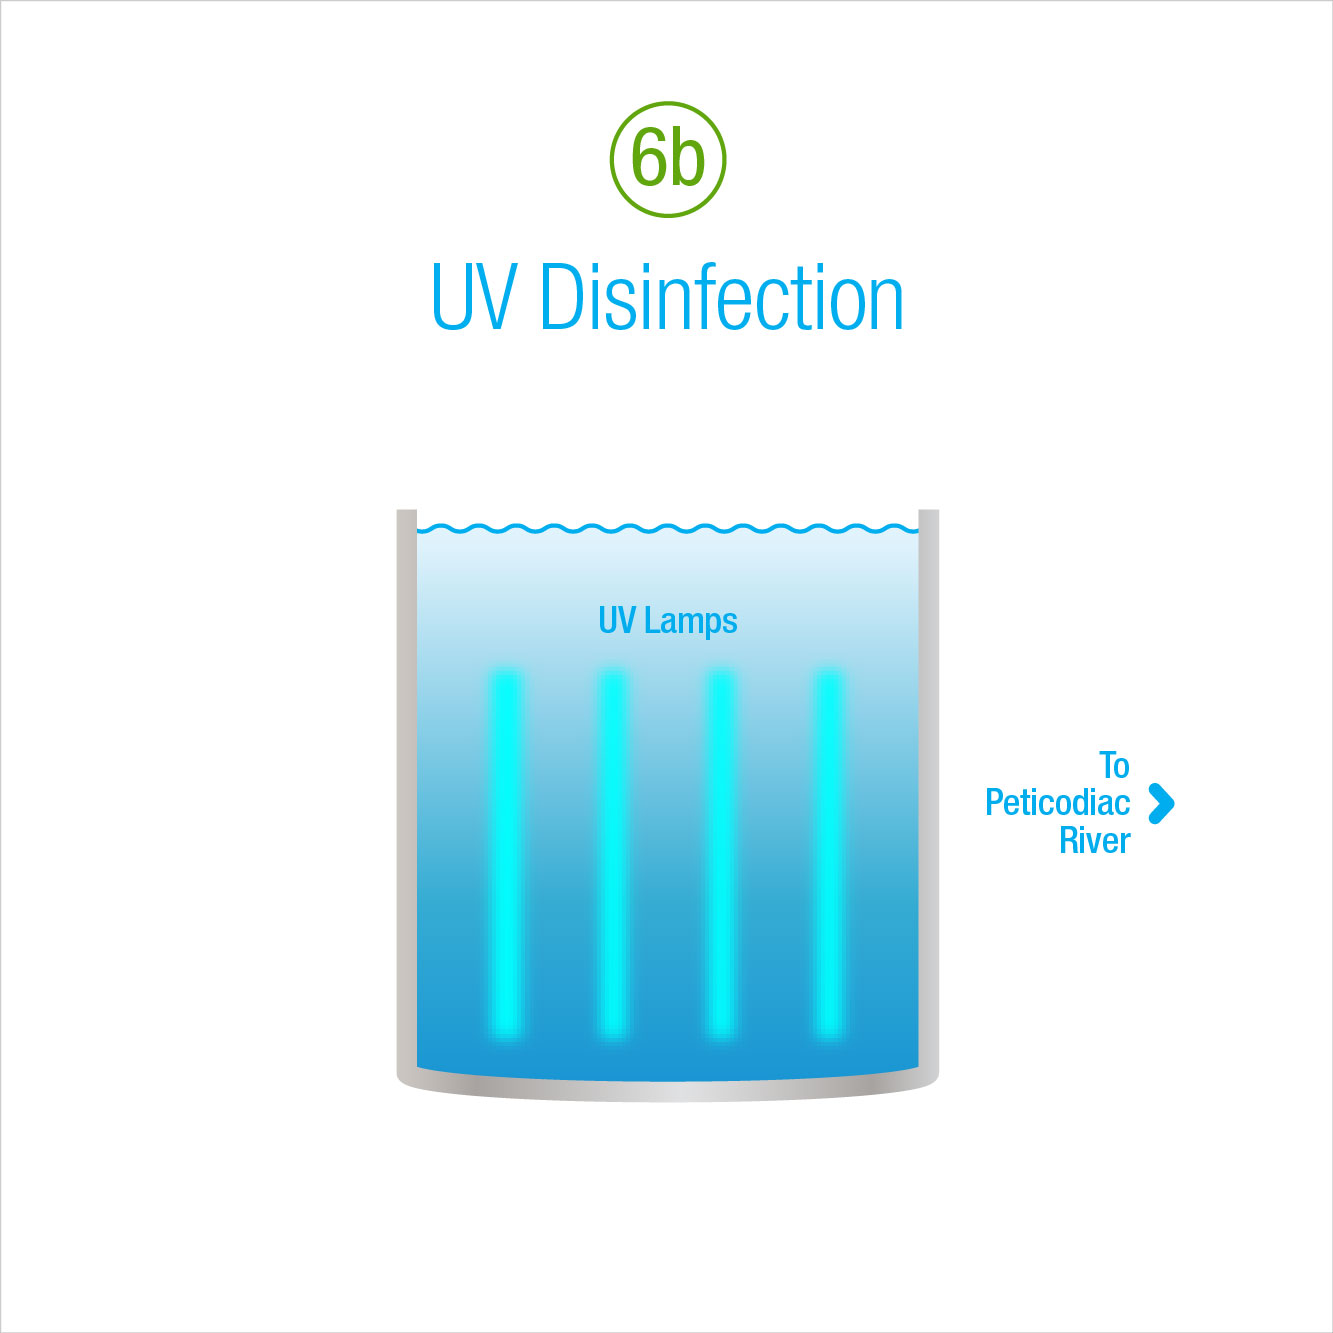 6b: UV Disinfection